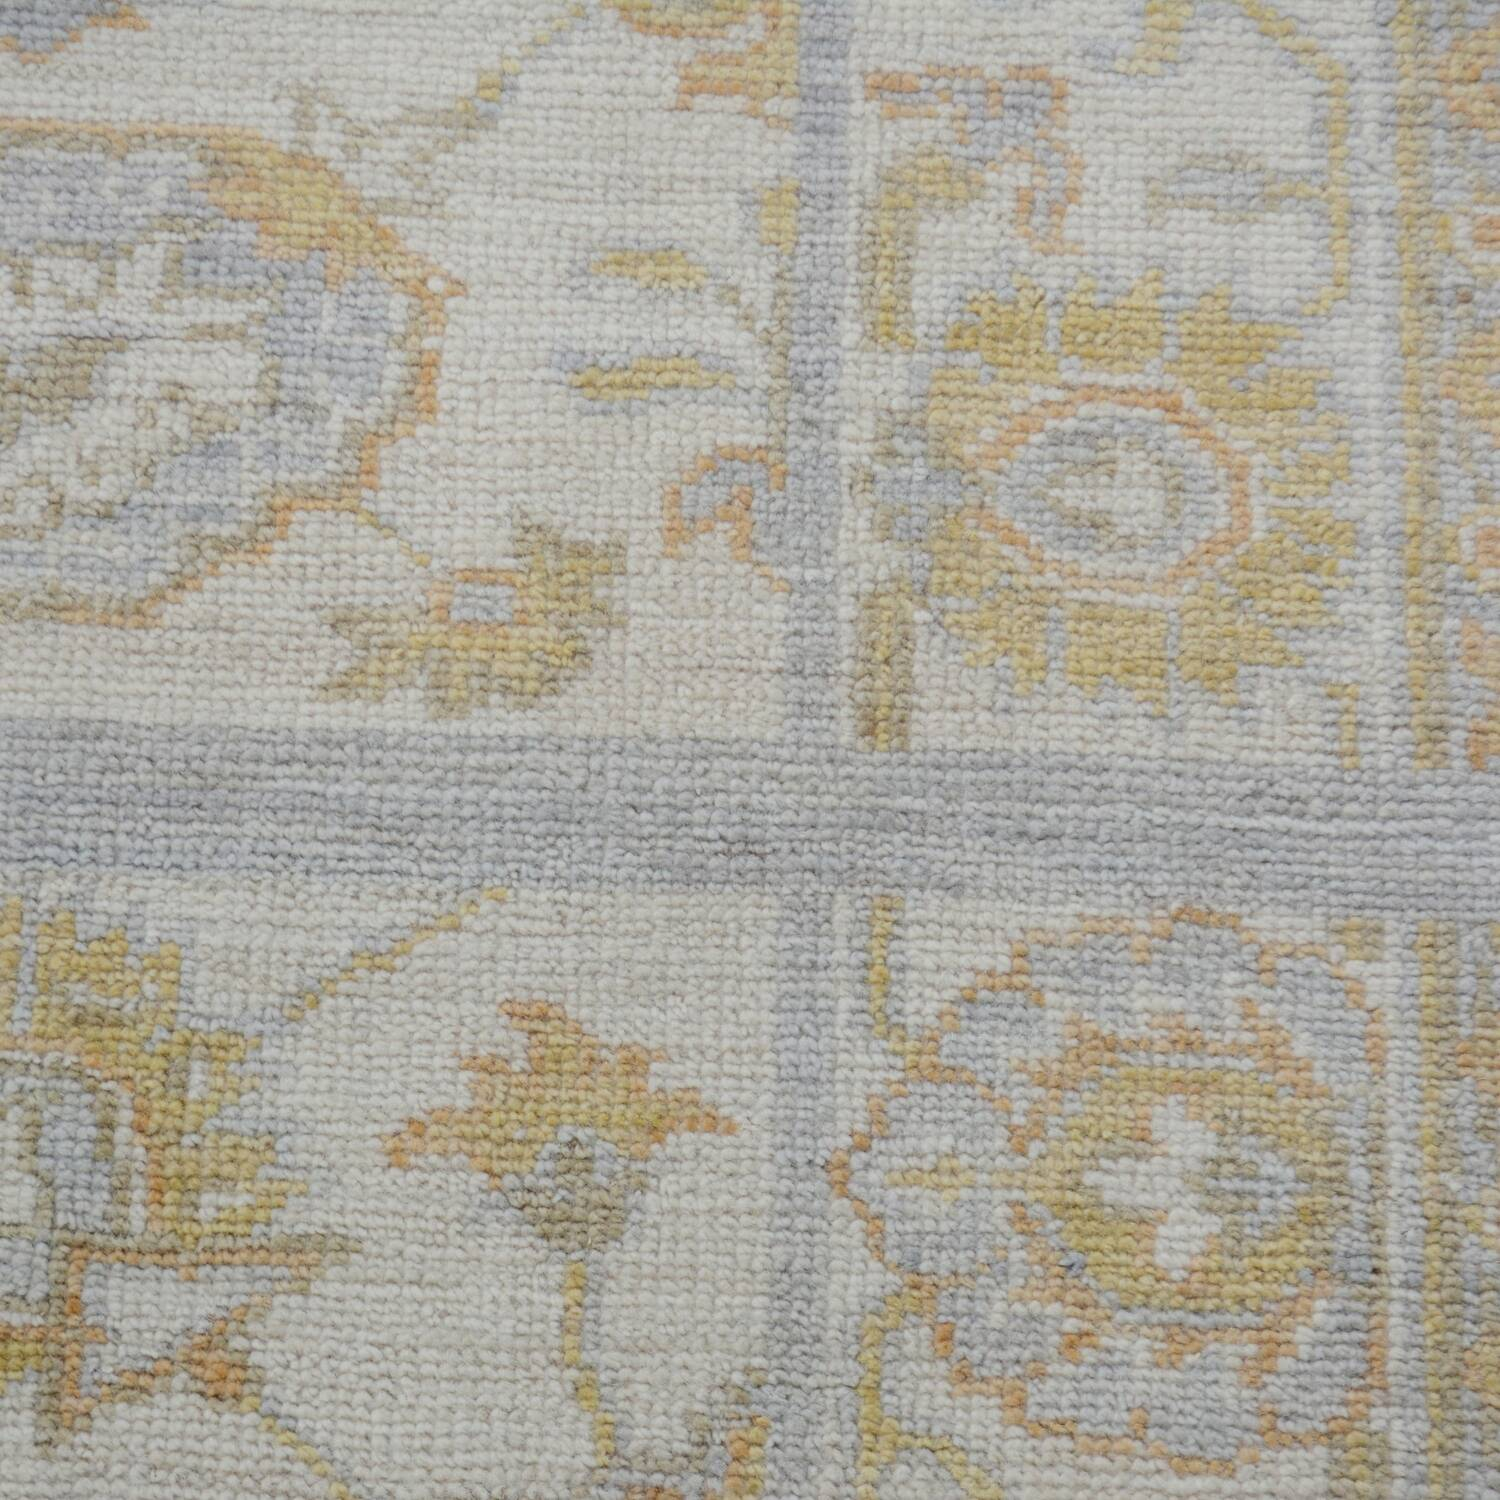 Floral All-Over Oushak Turkish Area Rug 3x4 image 4